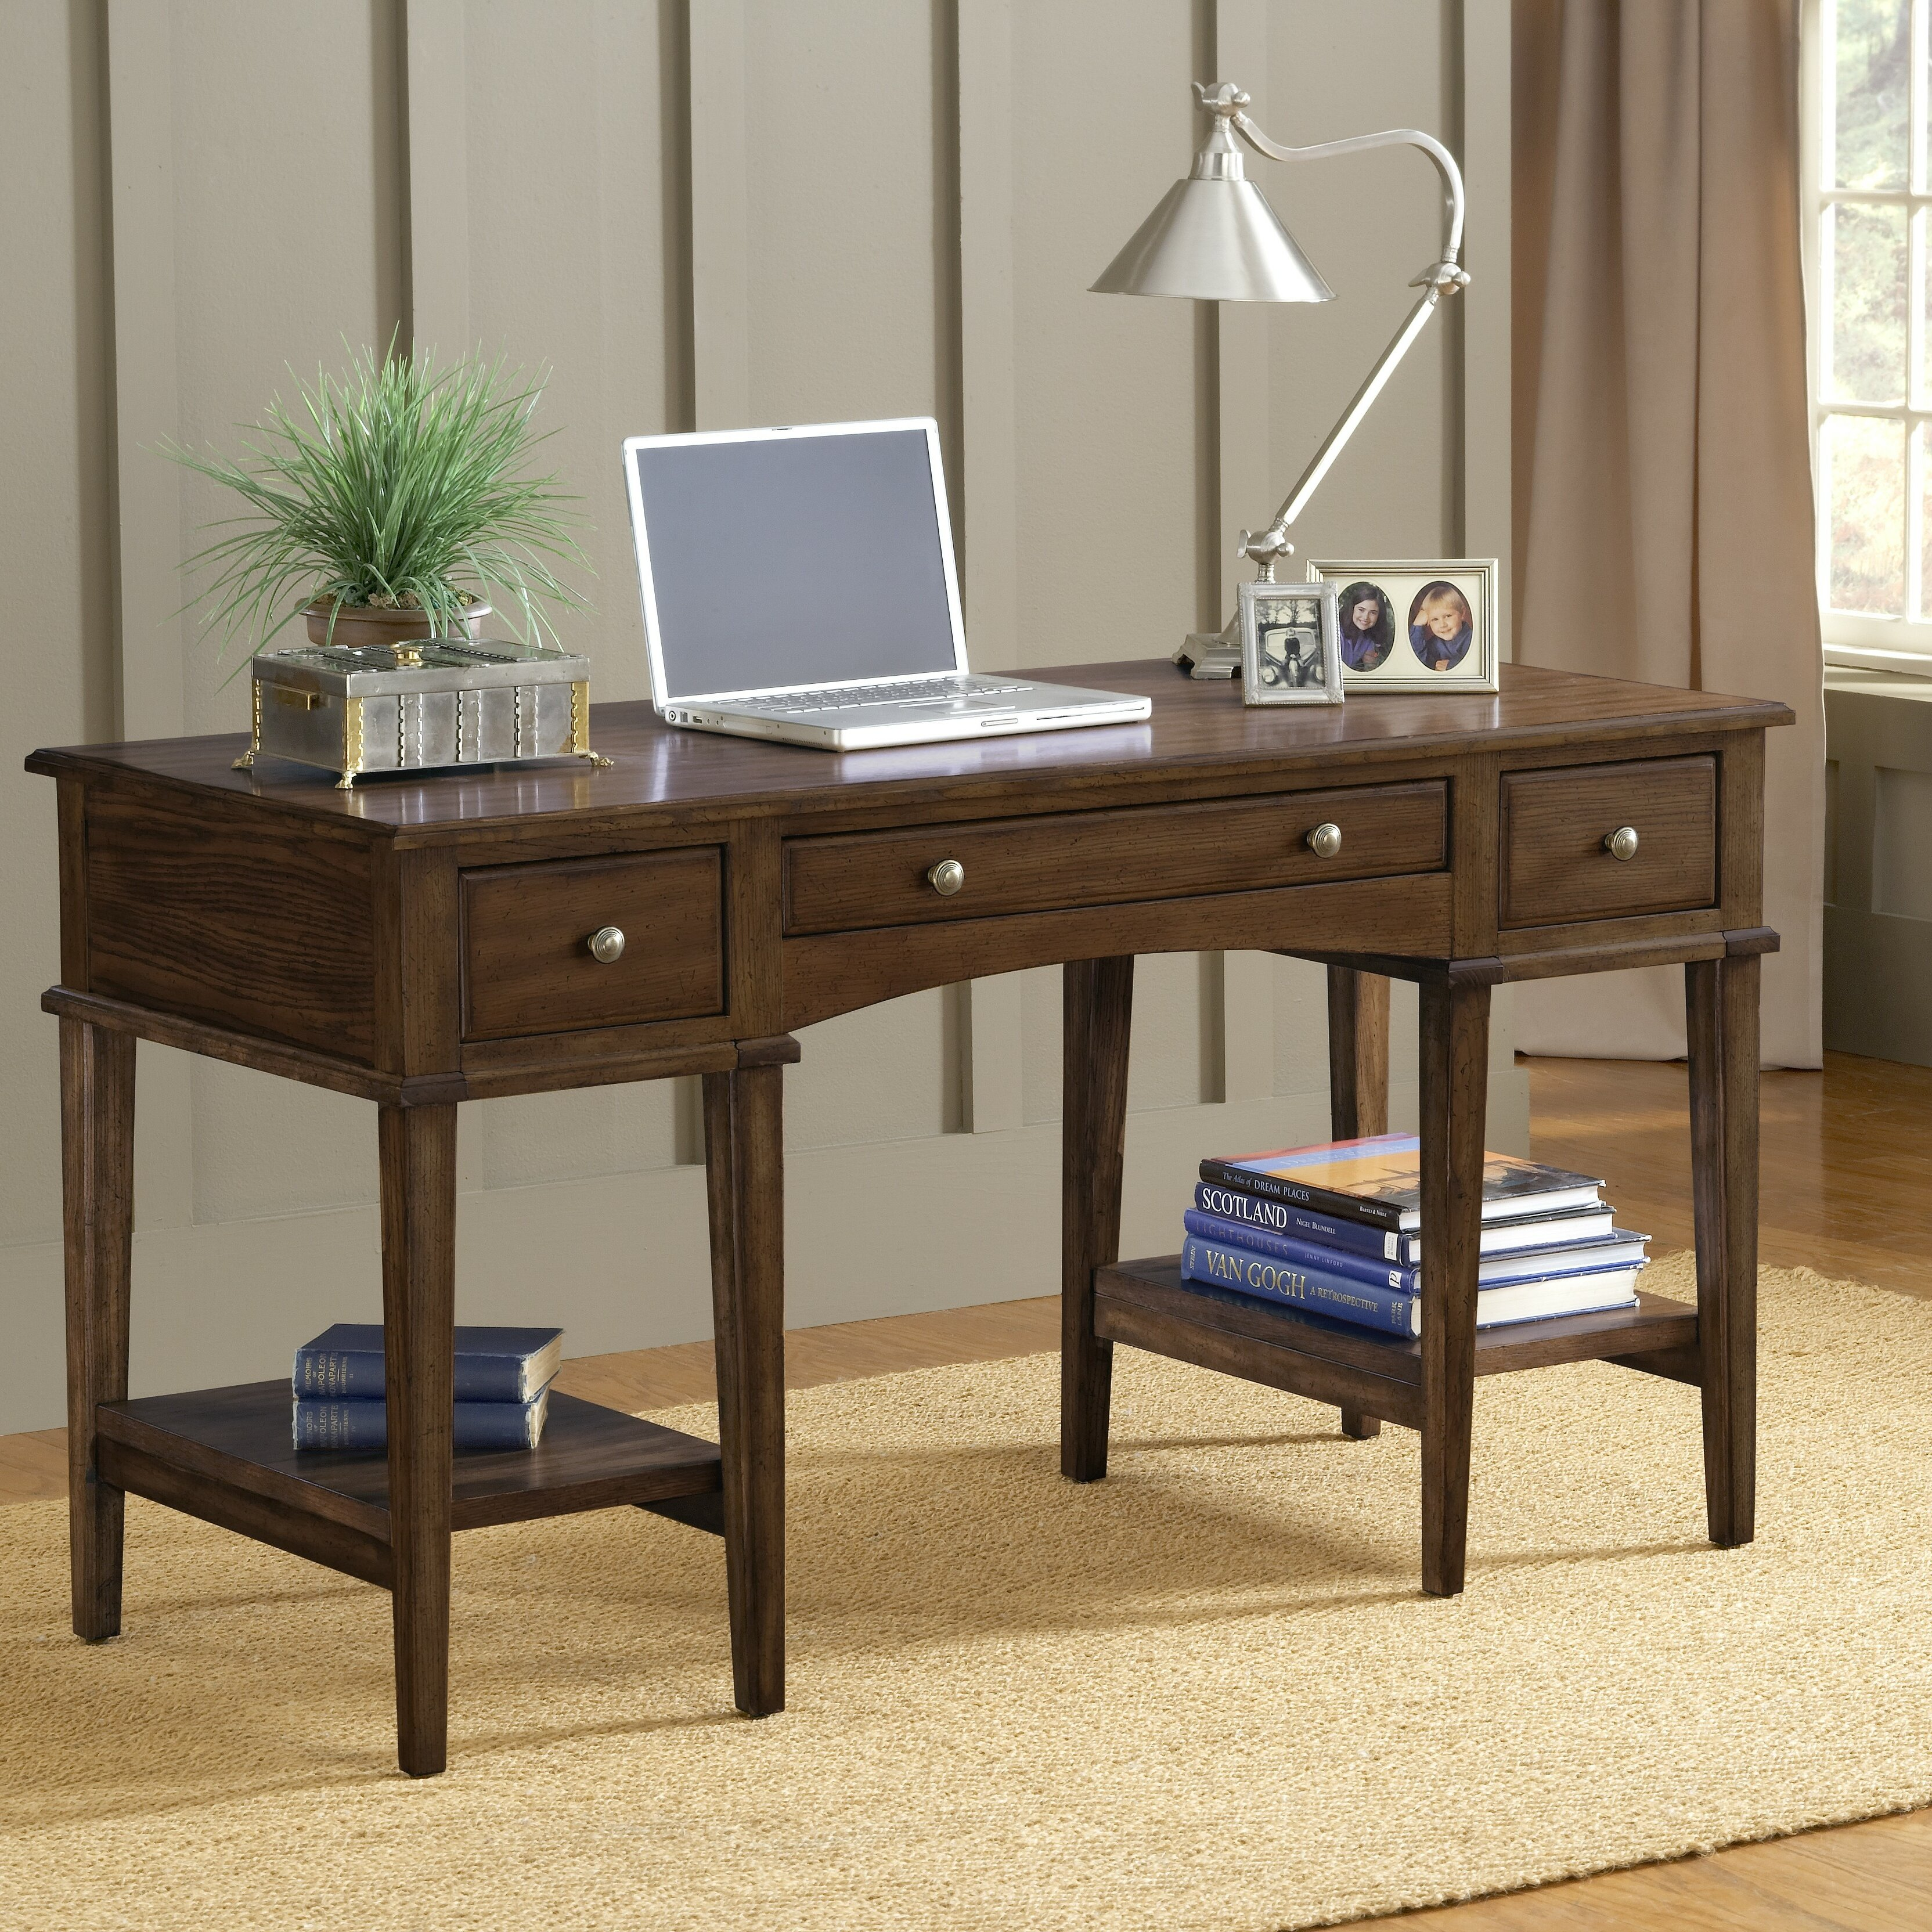 Hillsdale gresham writing desk reviews wayfair for Furniture 2 day shipping